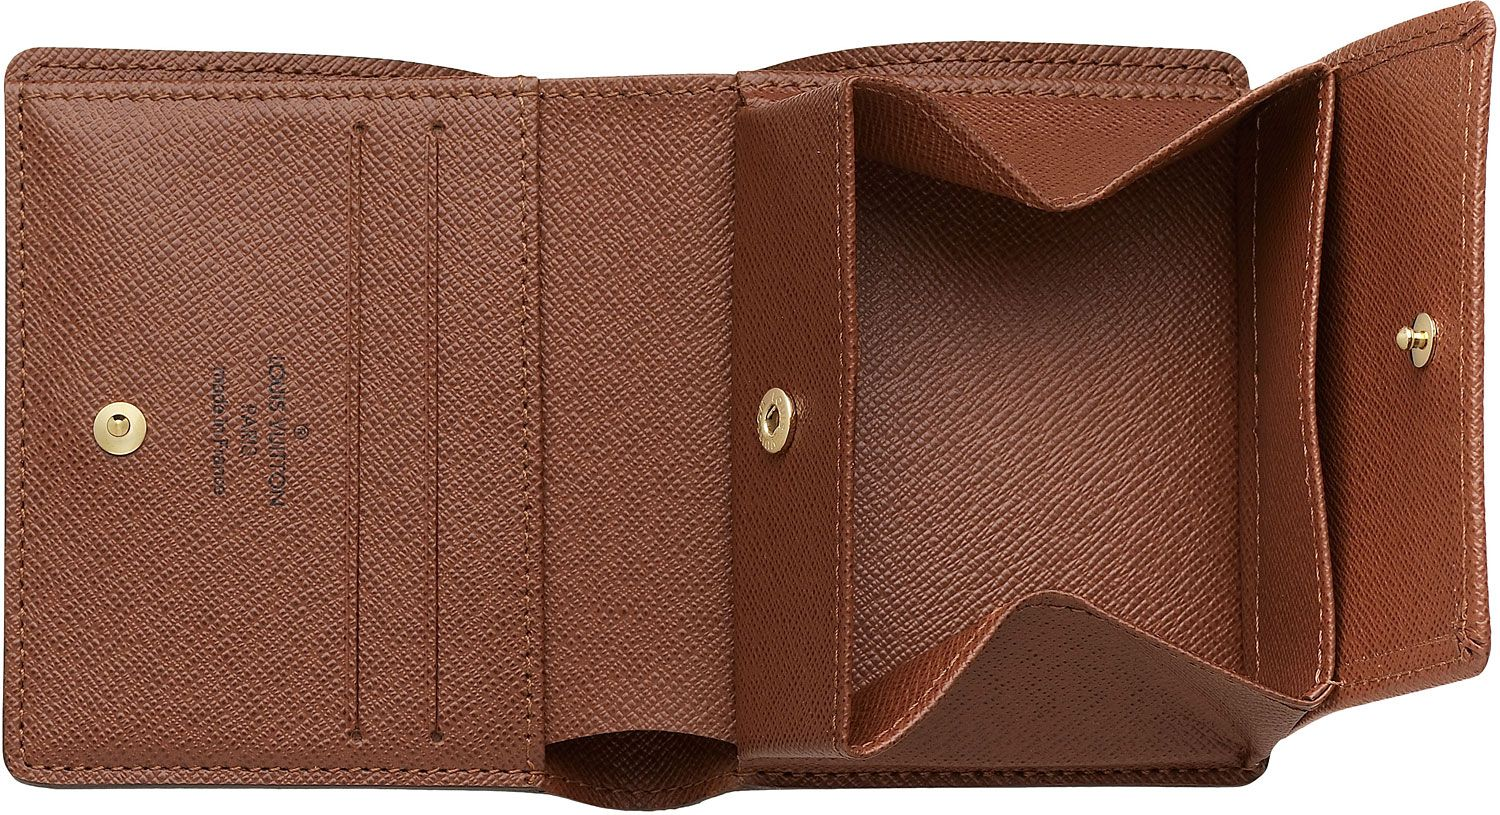 Louis vuitton mens billfold wallet with 6 credit card